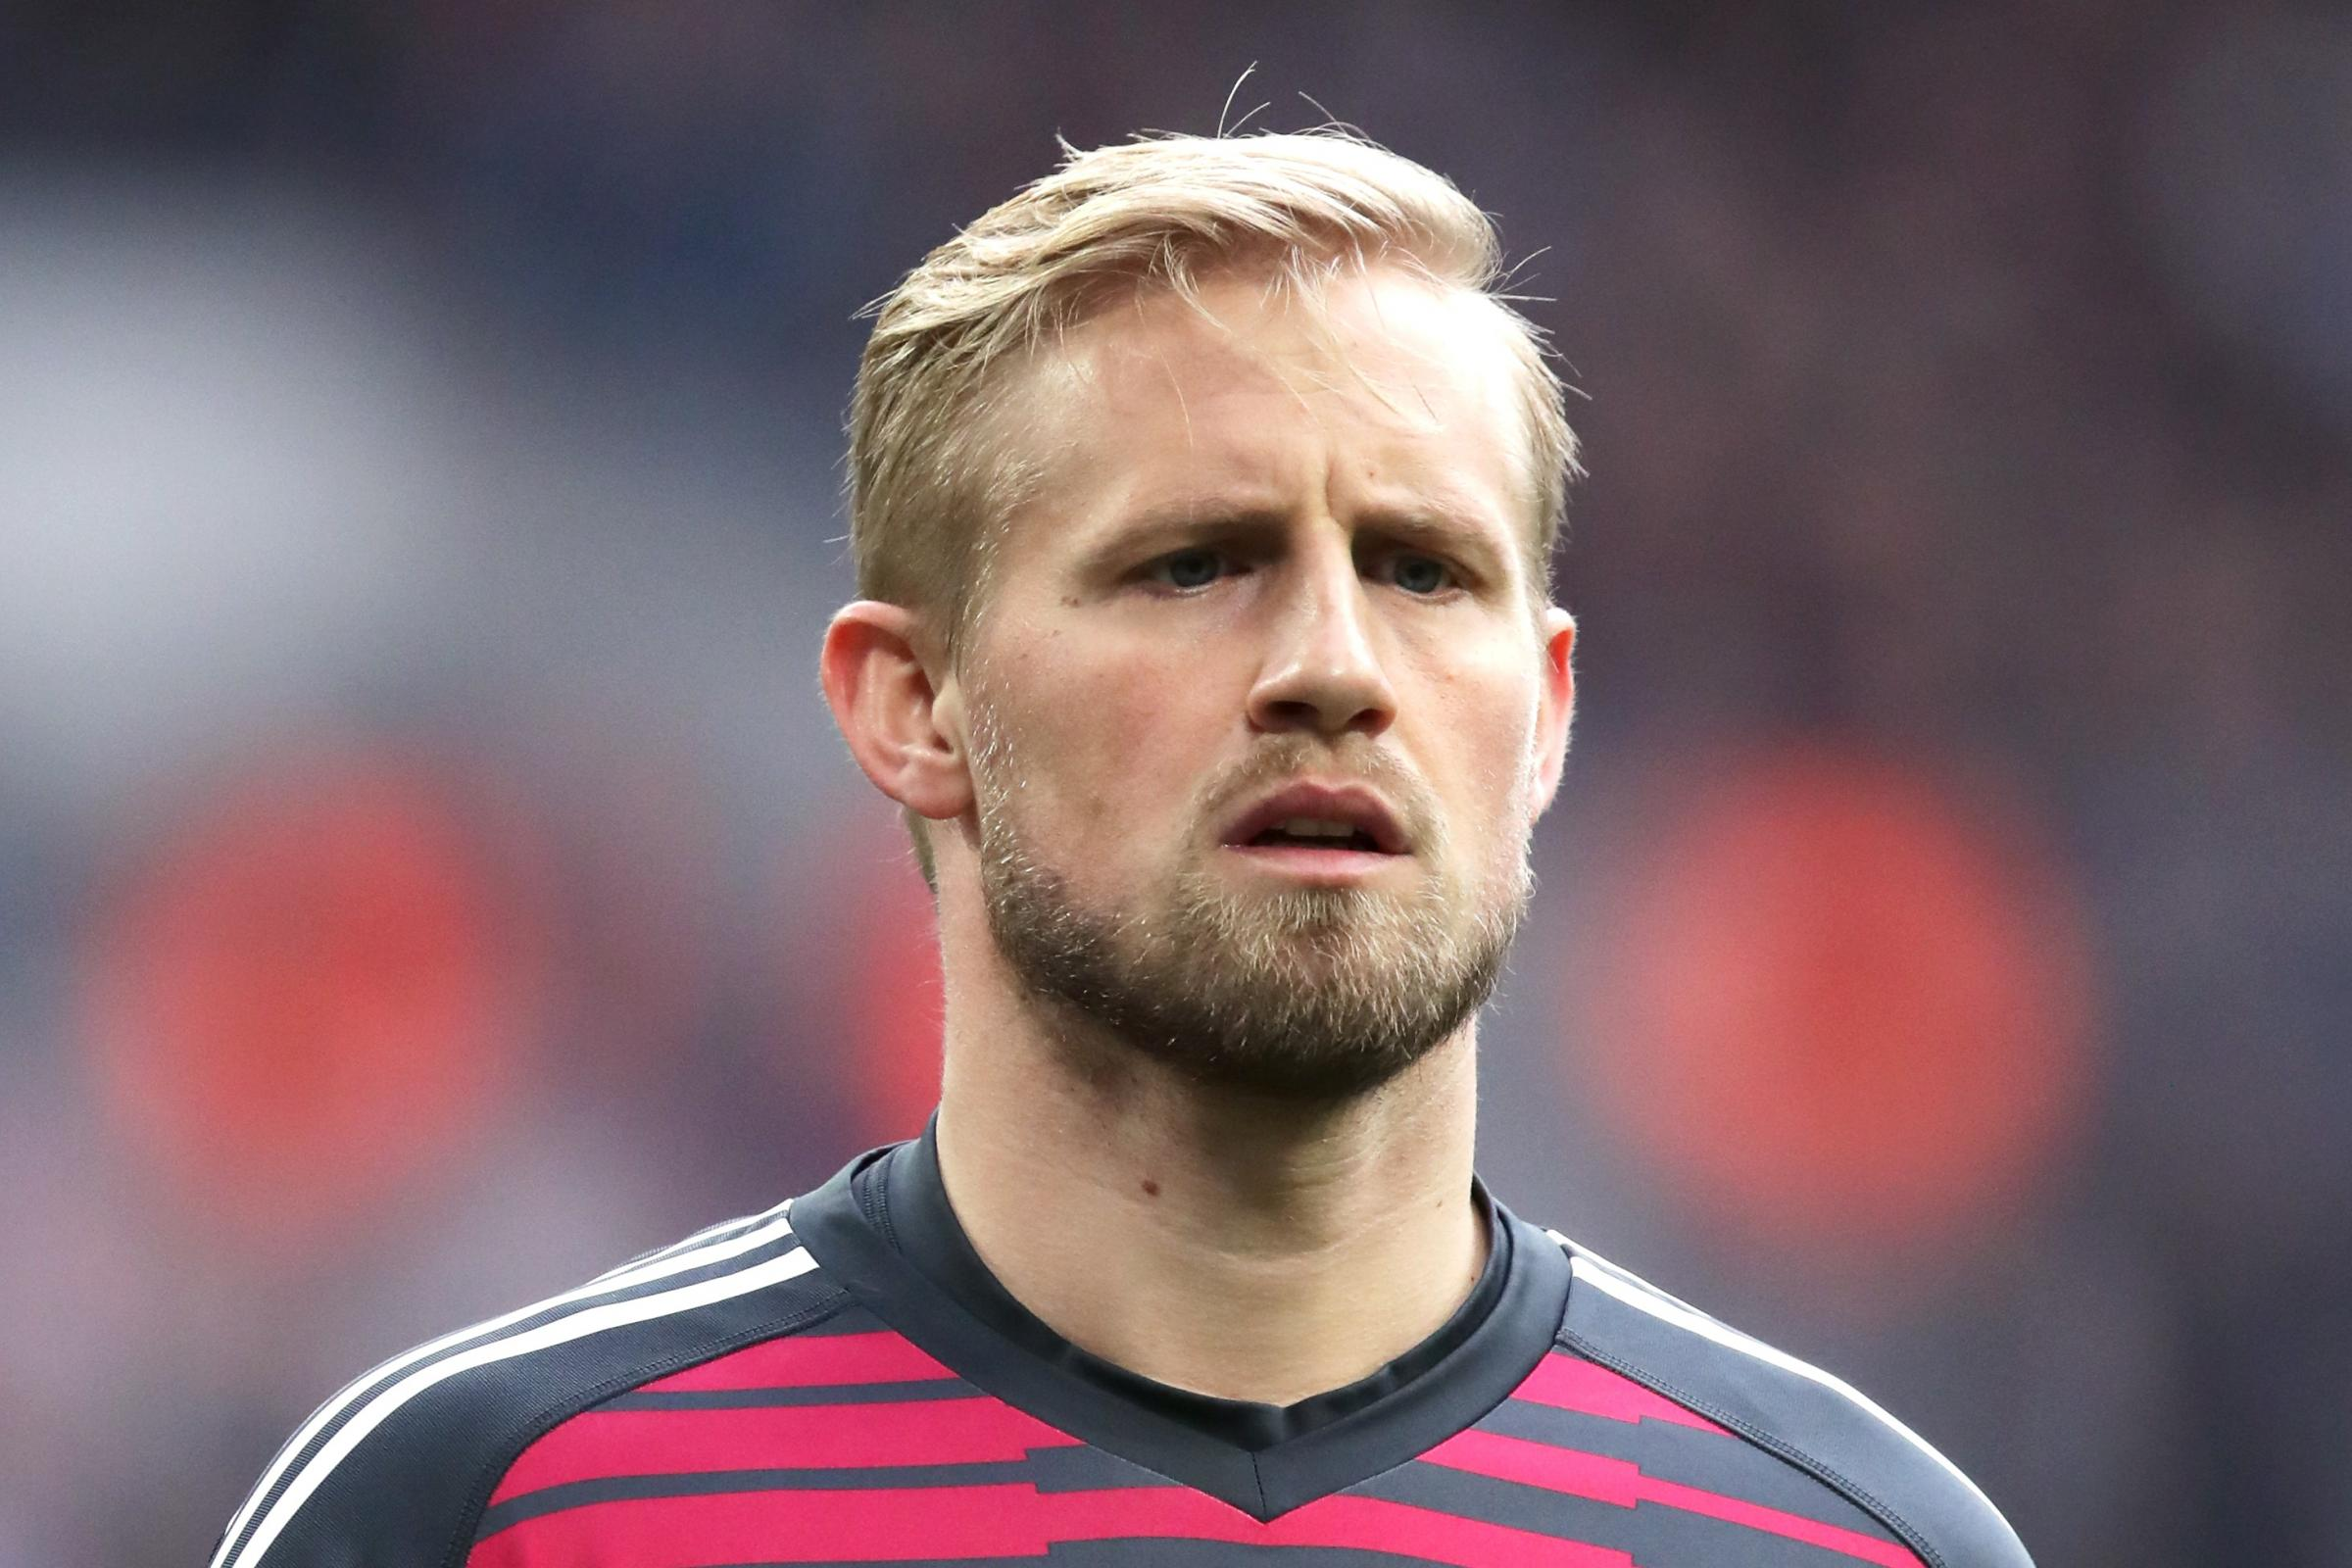 Leicester goalkeeper Kasper Schmeichel has spoken to Claude Puel about his father's comments